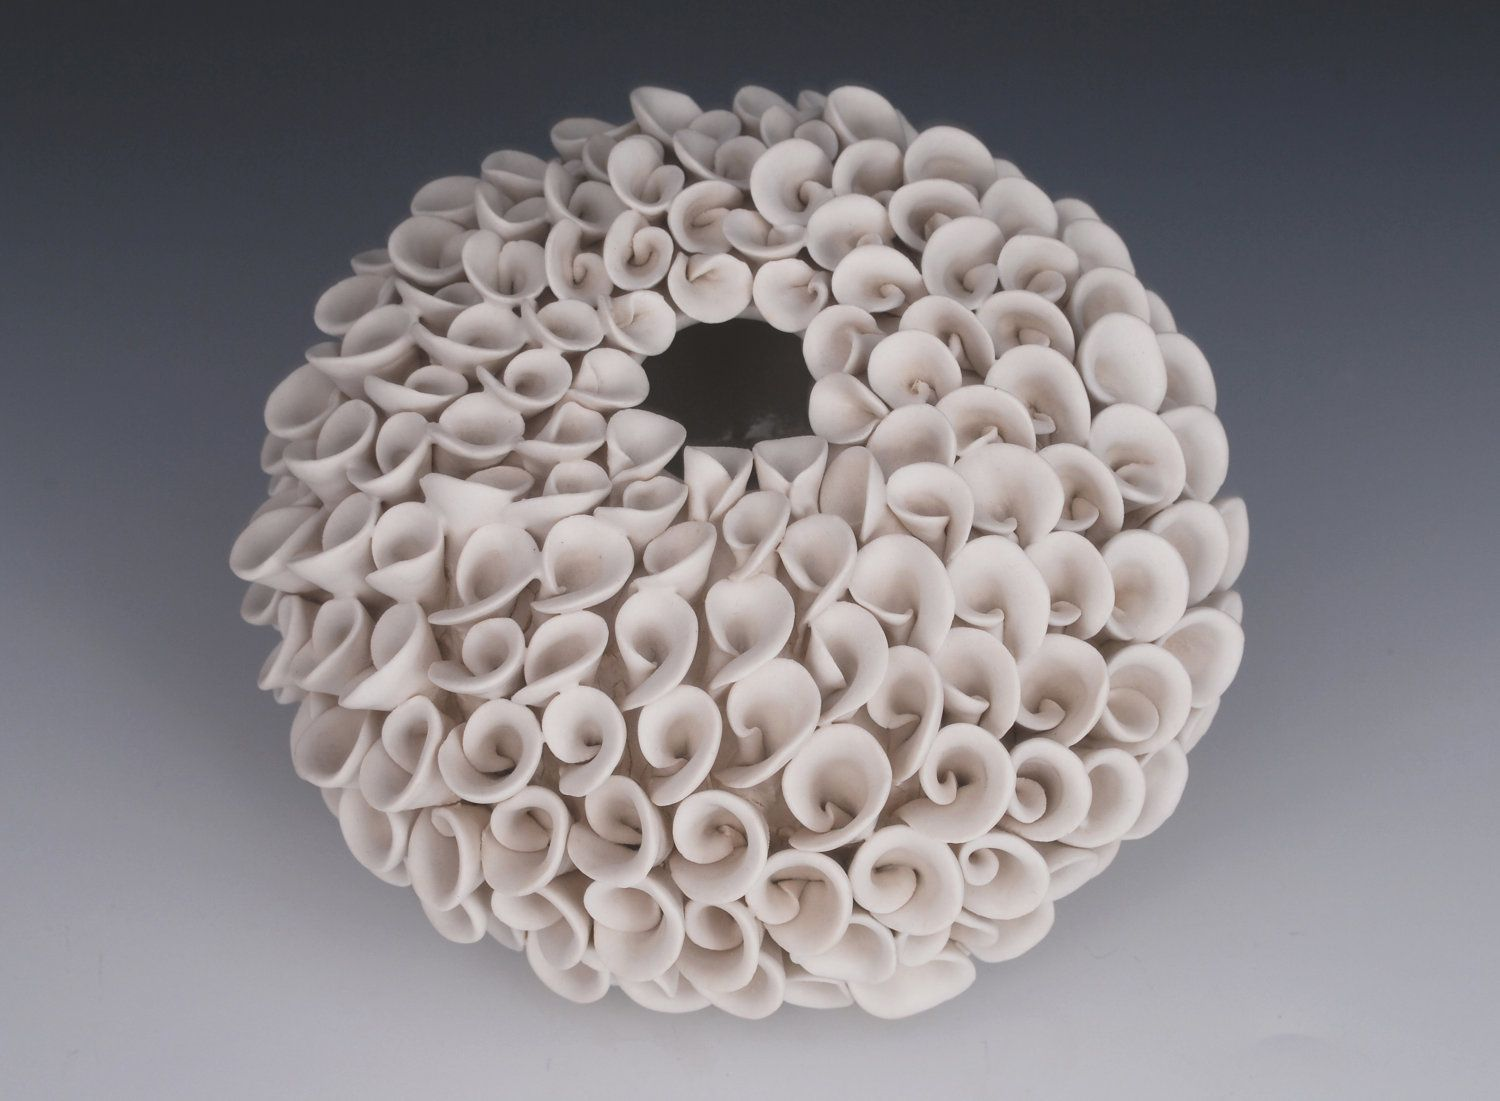 515 best some of my pottery handmade porcelain images on pinterest 515 best some of my pottery handmade porcelain images on pinterest porcelain ceramic art and ceramic pottery reviewsmspy